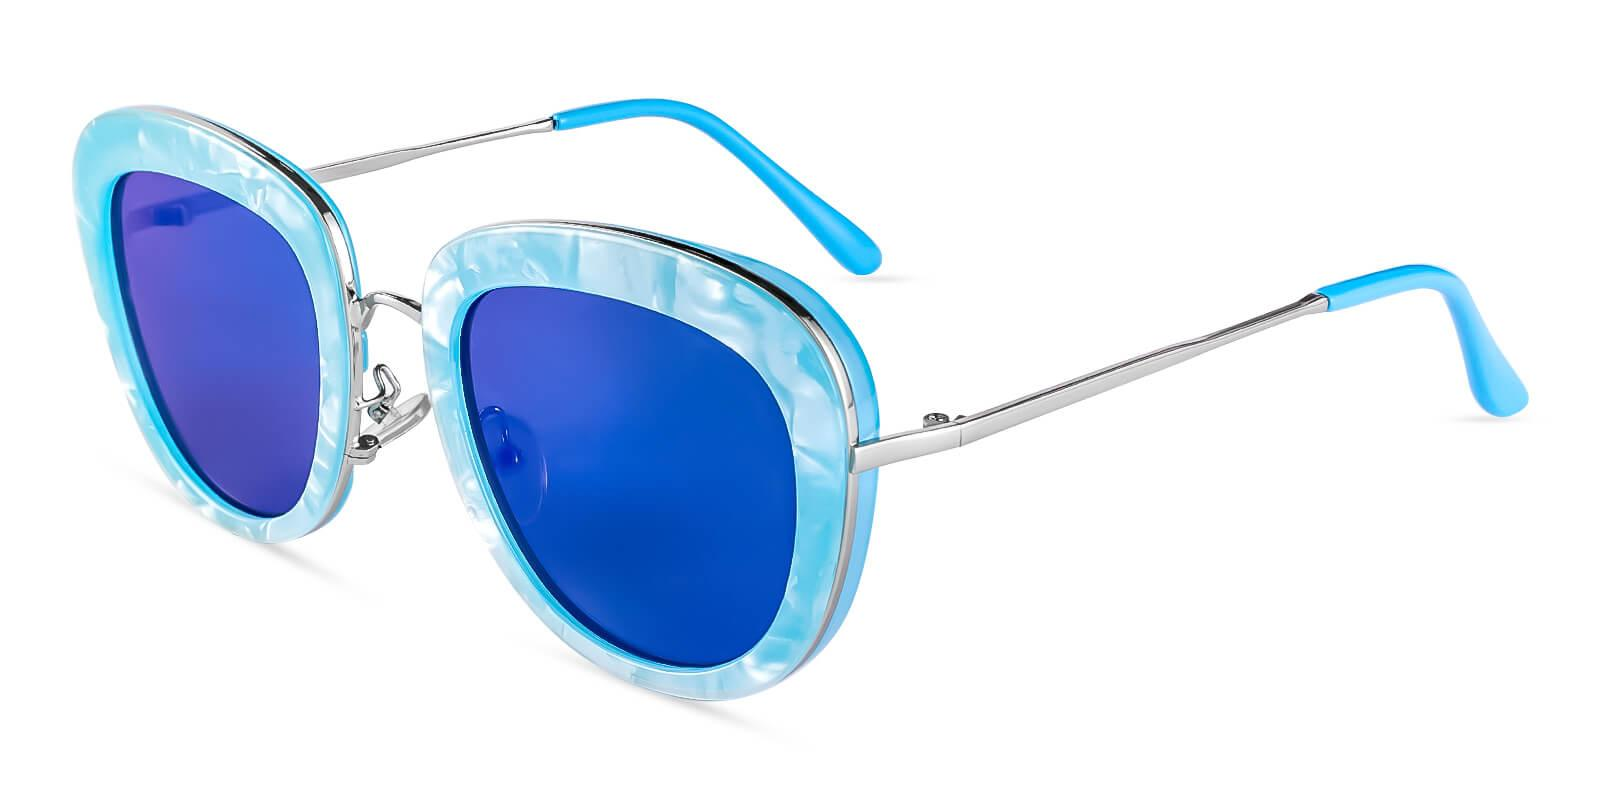 Jupiter Blue  NosePads , Sunglasses Frames from ABBE Glasses